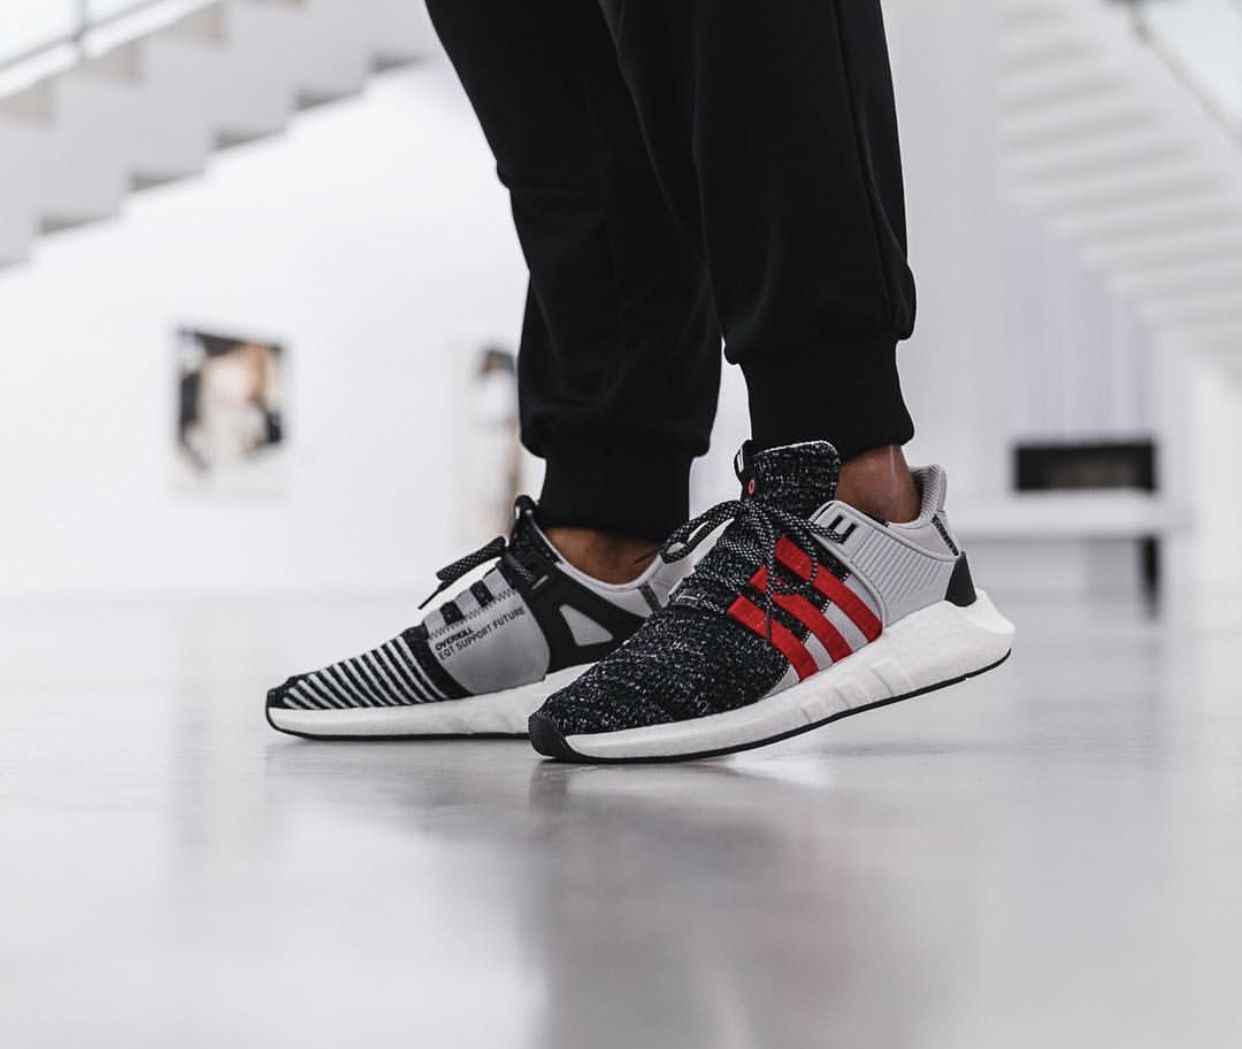 newest collection 09a1c 844c8 Adidas x Overkill consortium release. EQT Support 93/17 ...